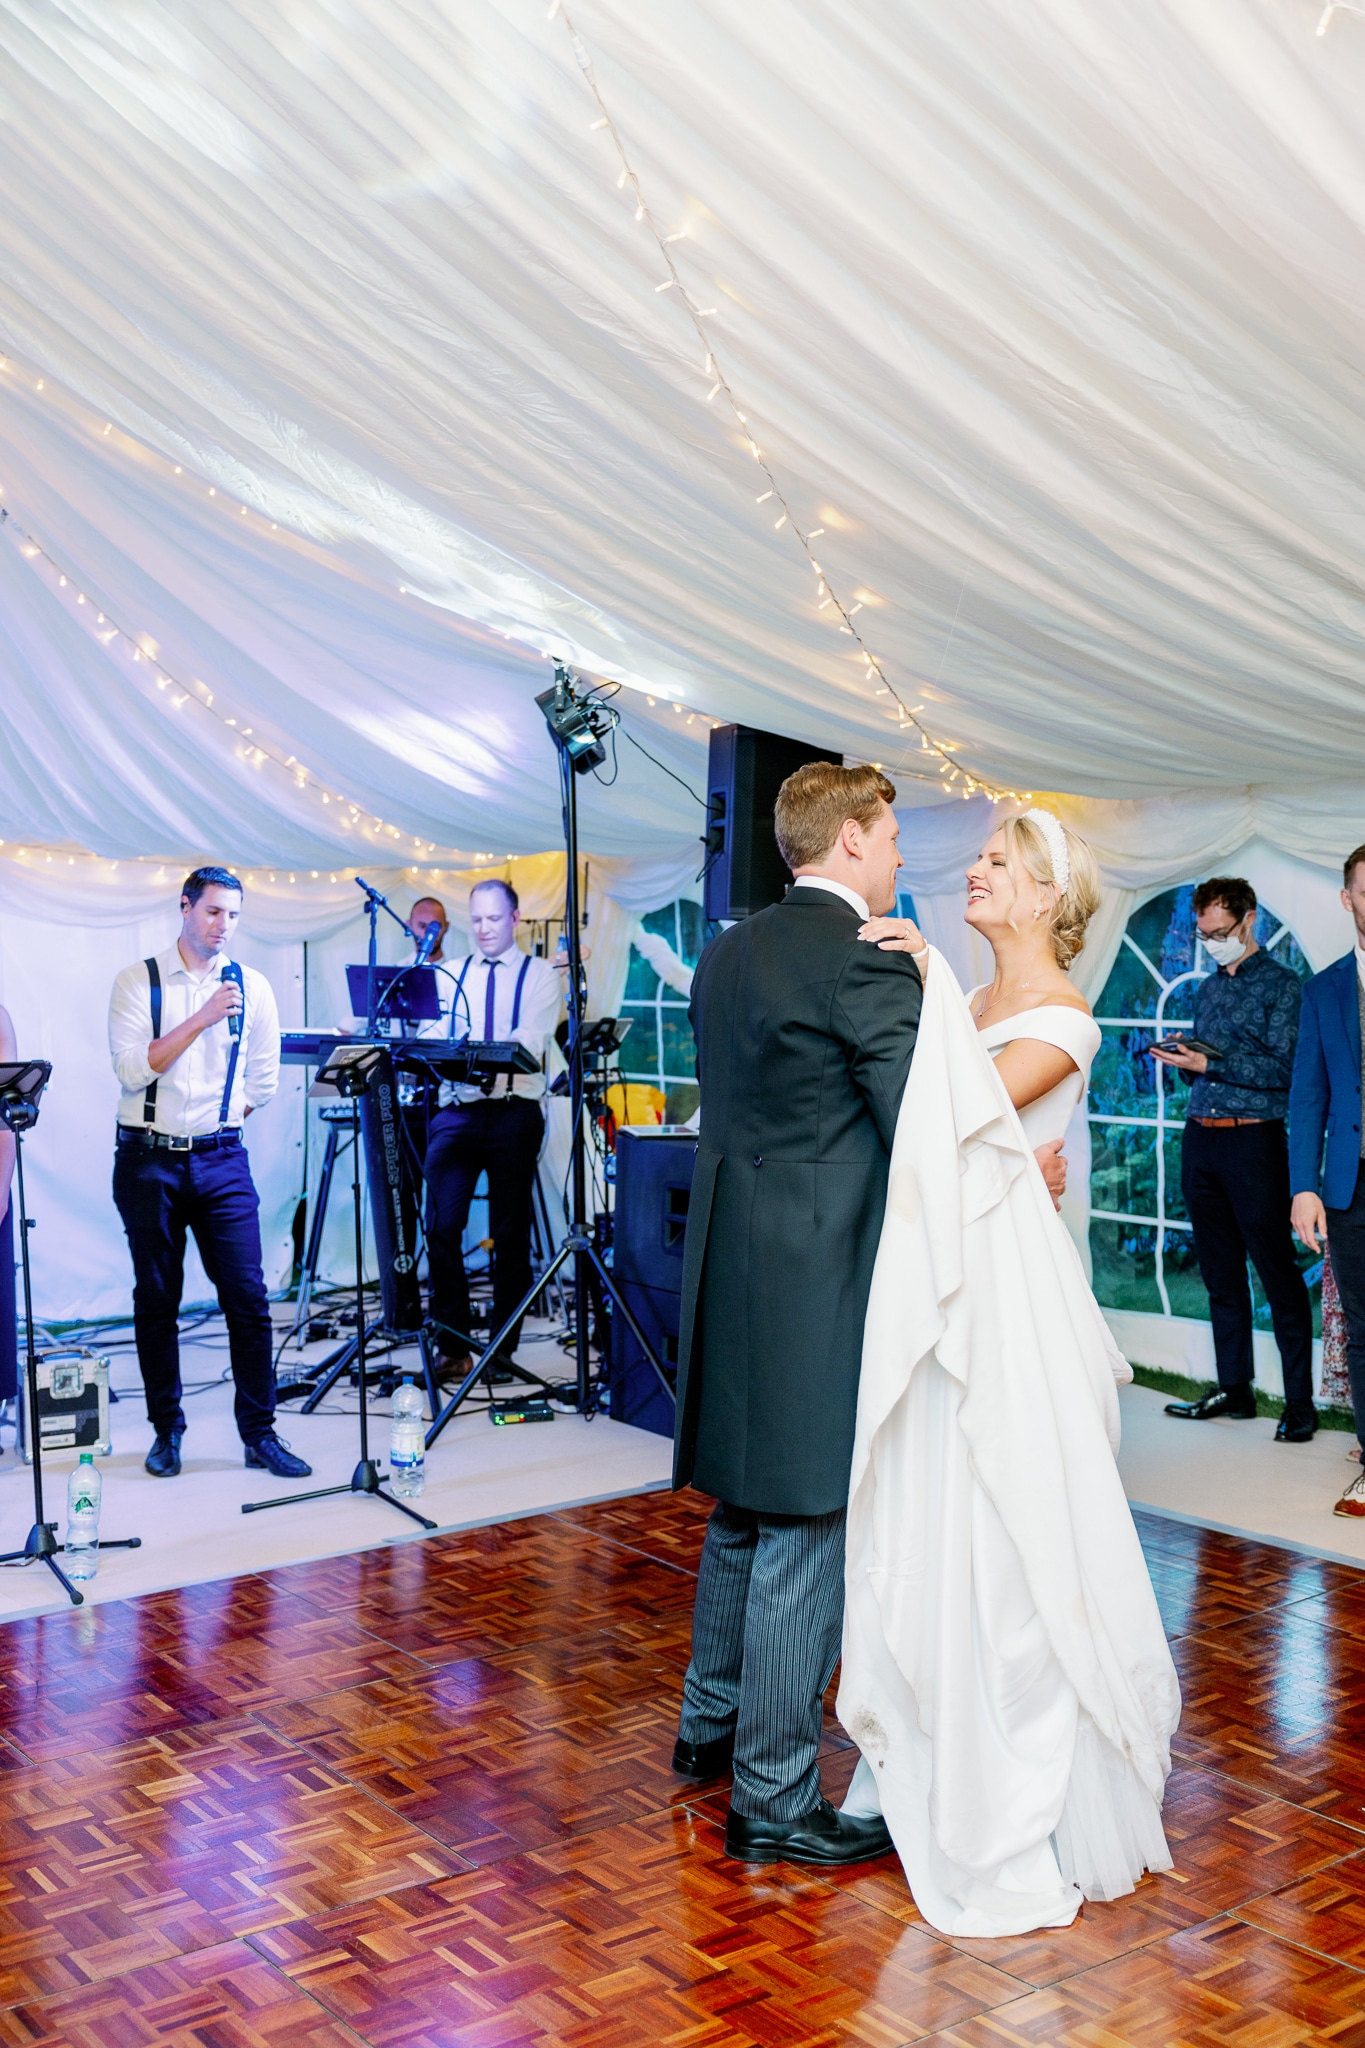 East Sussex marquee wedding with Pandora's Jukebox at Brickwall House wedding